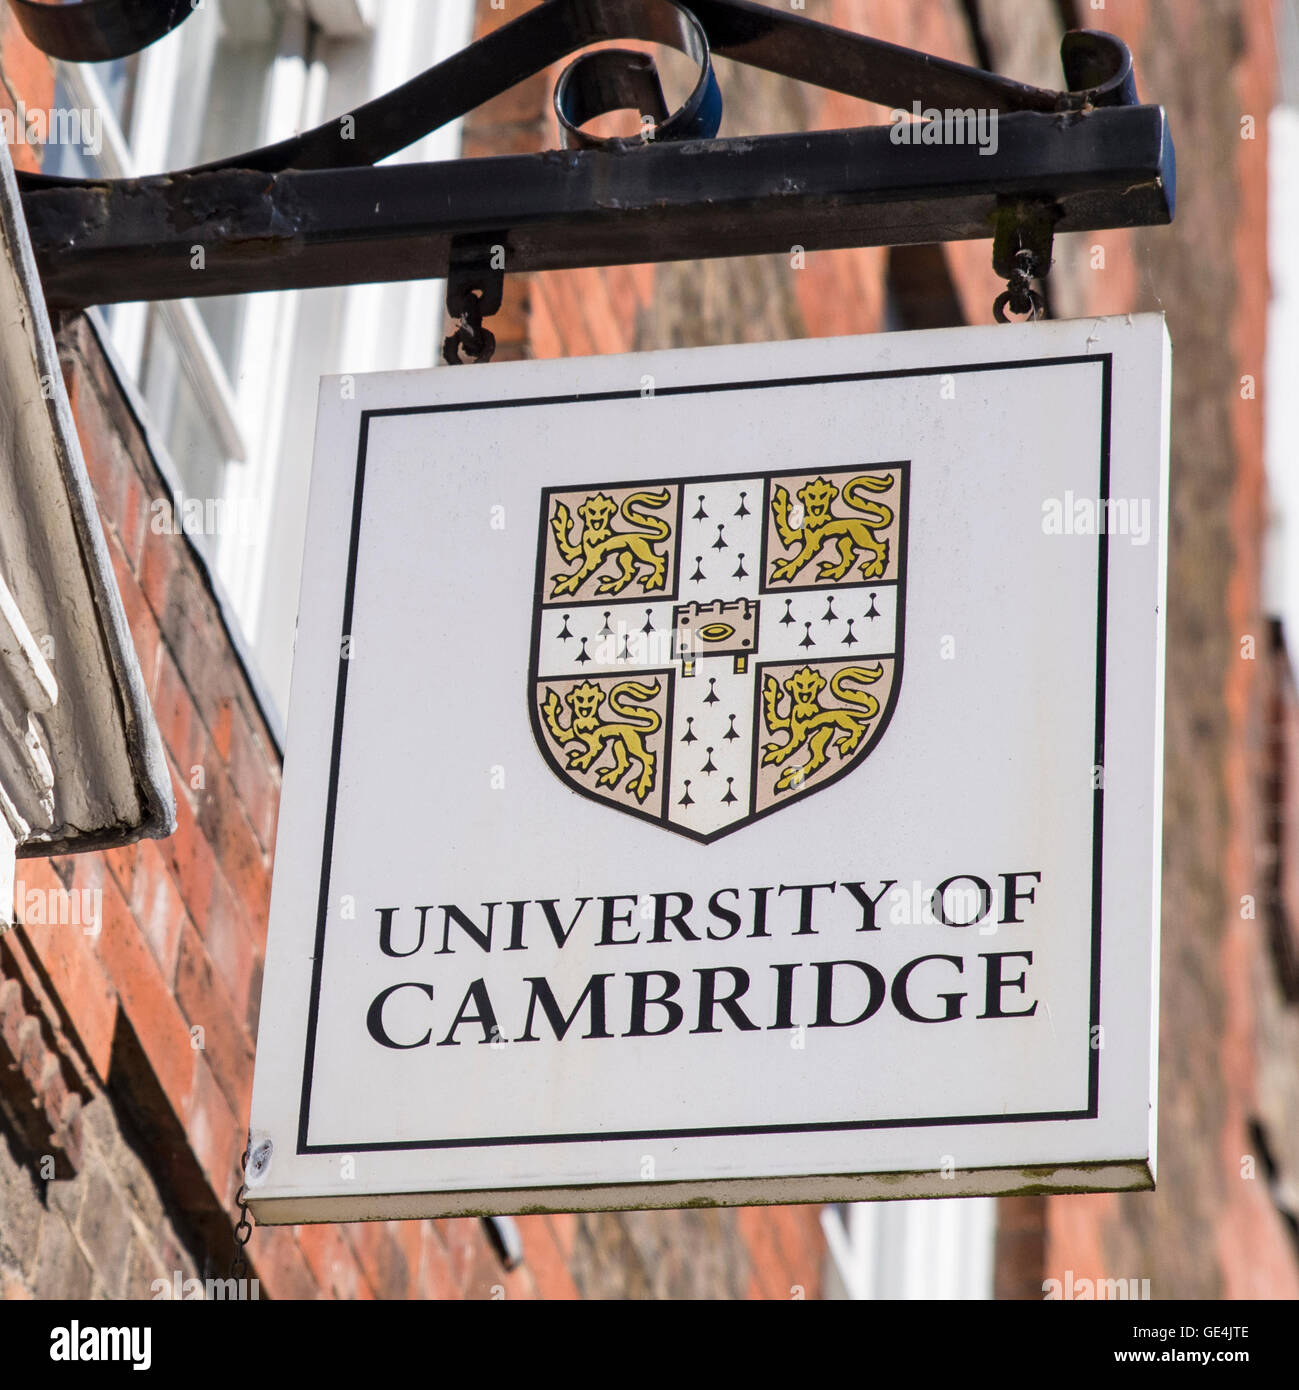 CAMBRIDGE, UK - JULY 18TH 2016: A University of Cambridge sign in central Cambridge, on 18th July 2016. Stock Photo